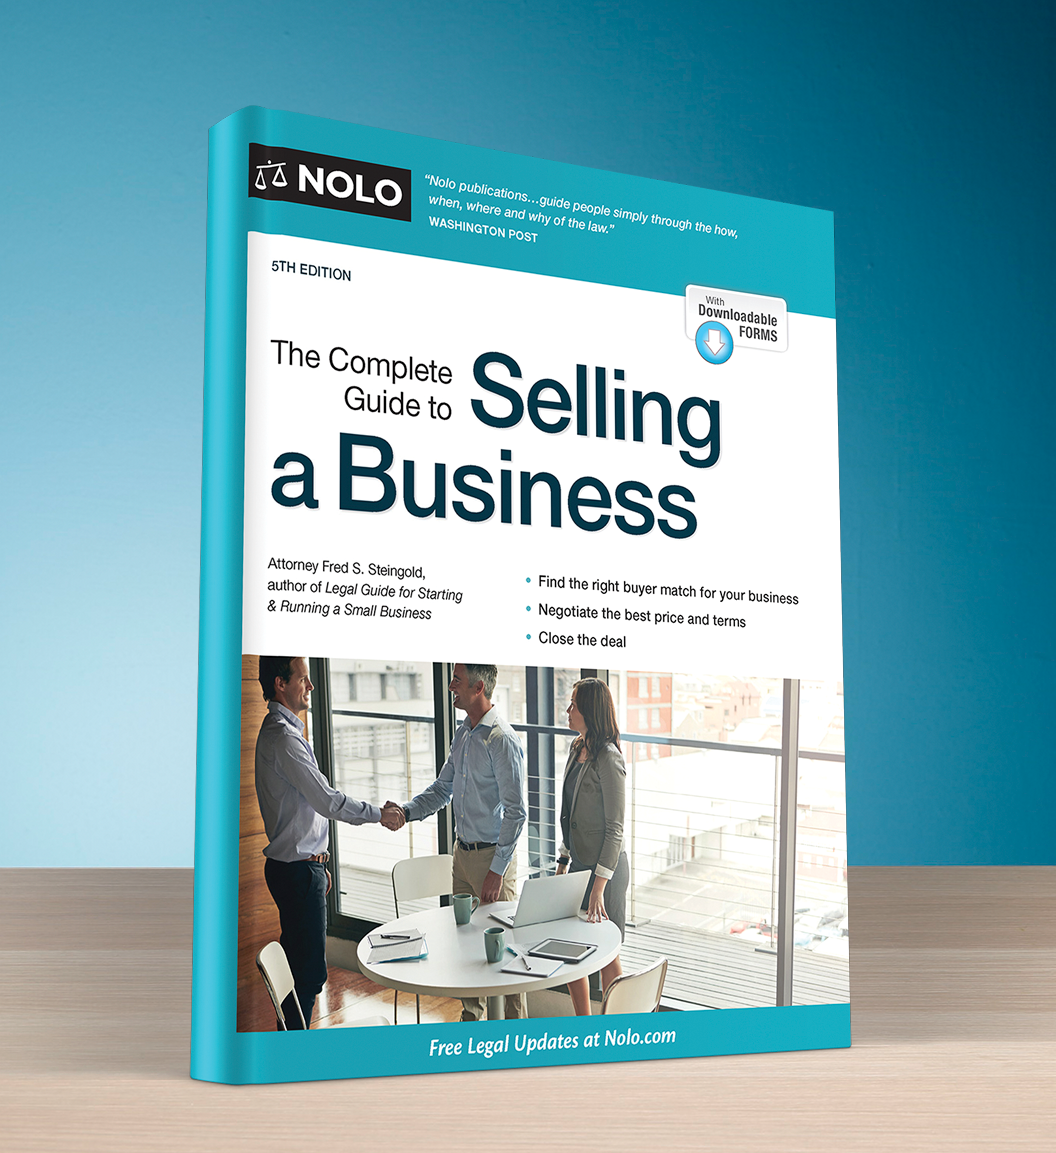 The Complete Guide to Selling a Business (4th edition) - #4751